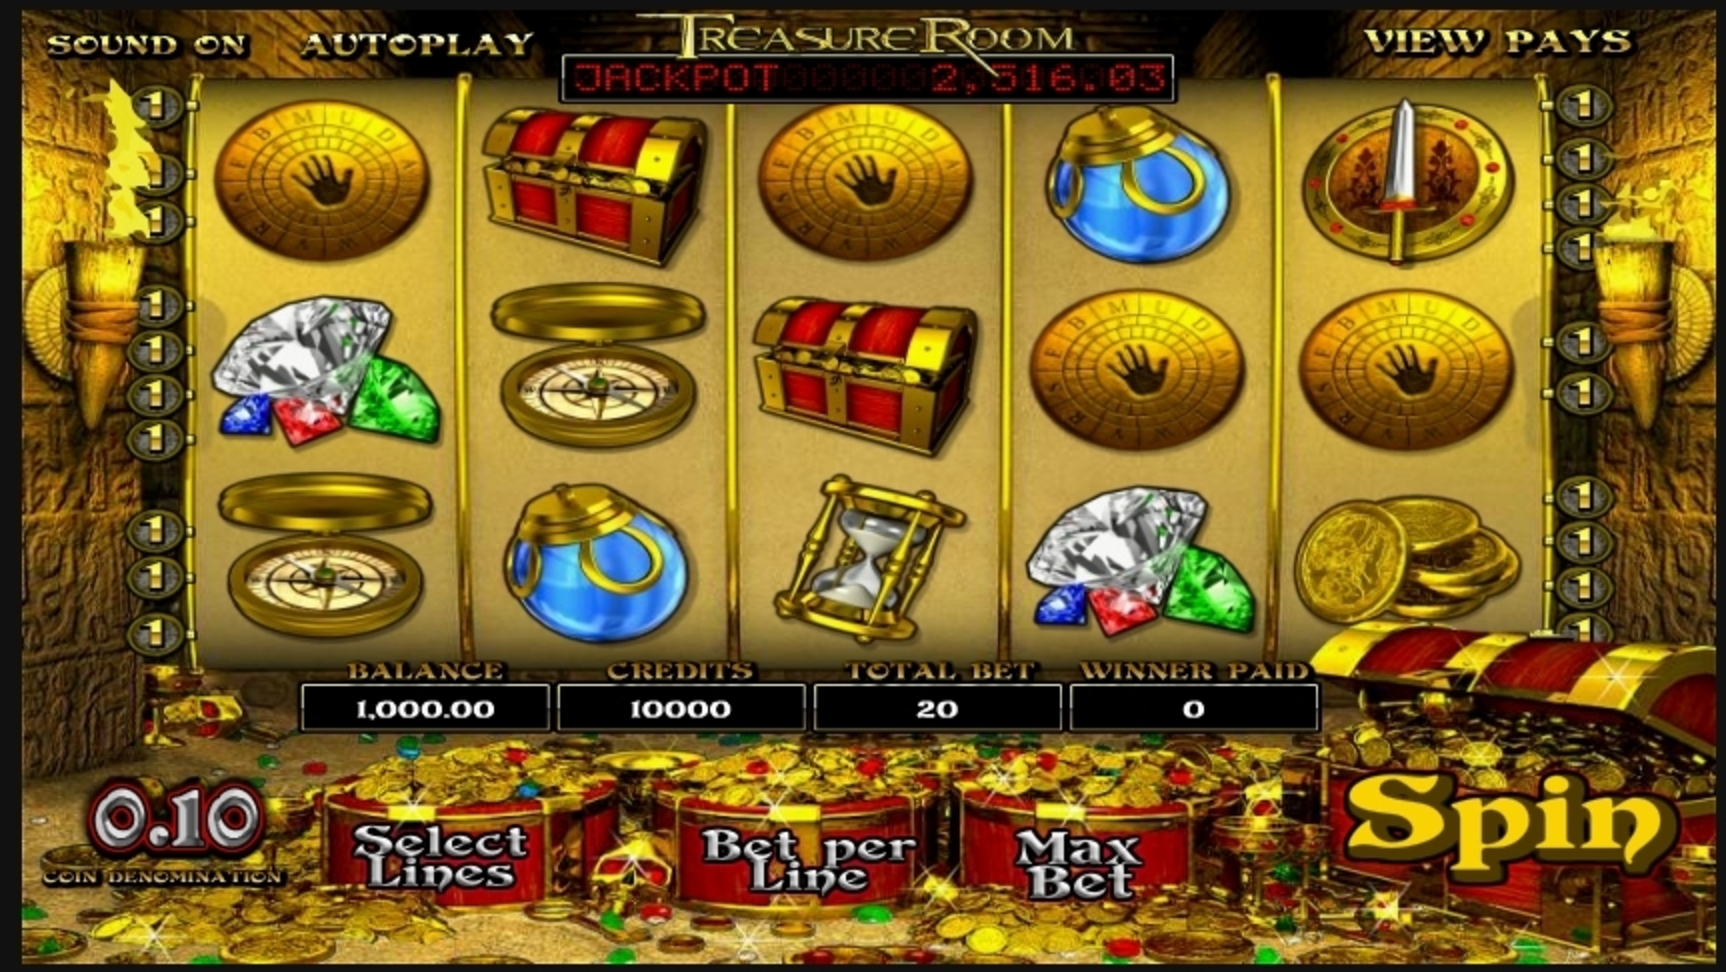 Reels in Treasure Room Slot Game by Betsoft